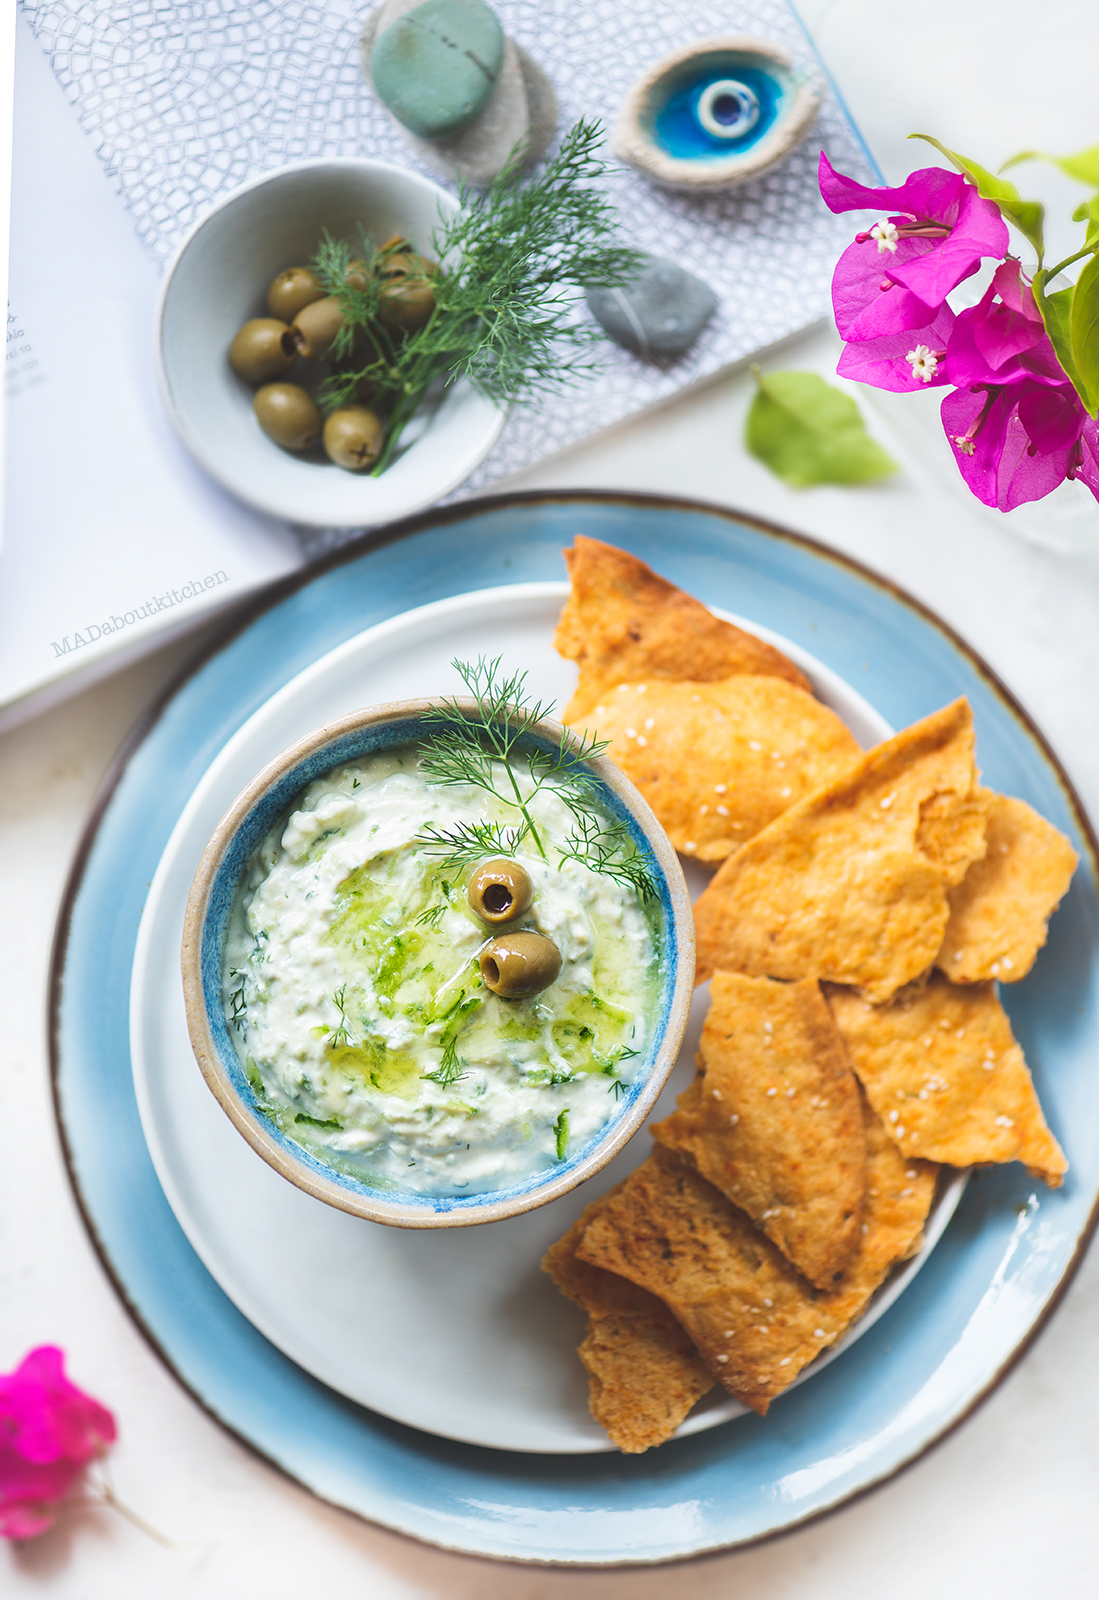 Tzatziki, the greek yogurt dip is a simple dip made using hung curd and is flavoured with garlic, dil leaves and drizzled with extra virgin olive oil.